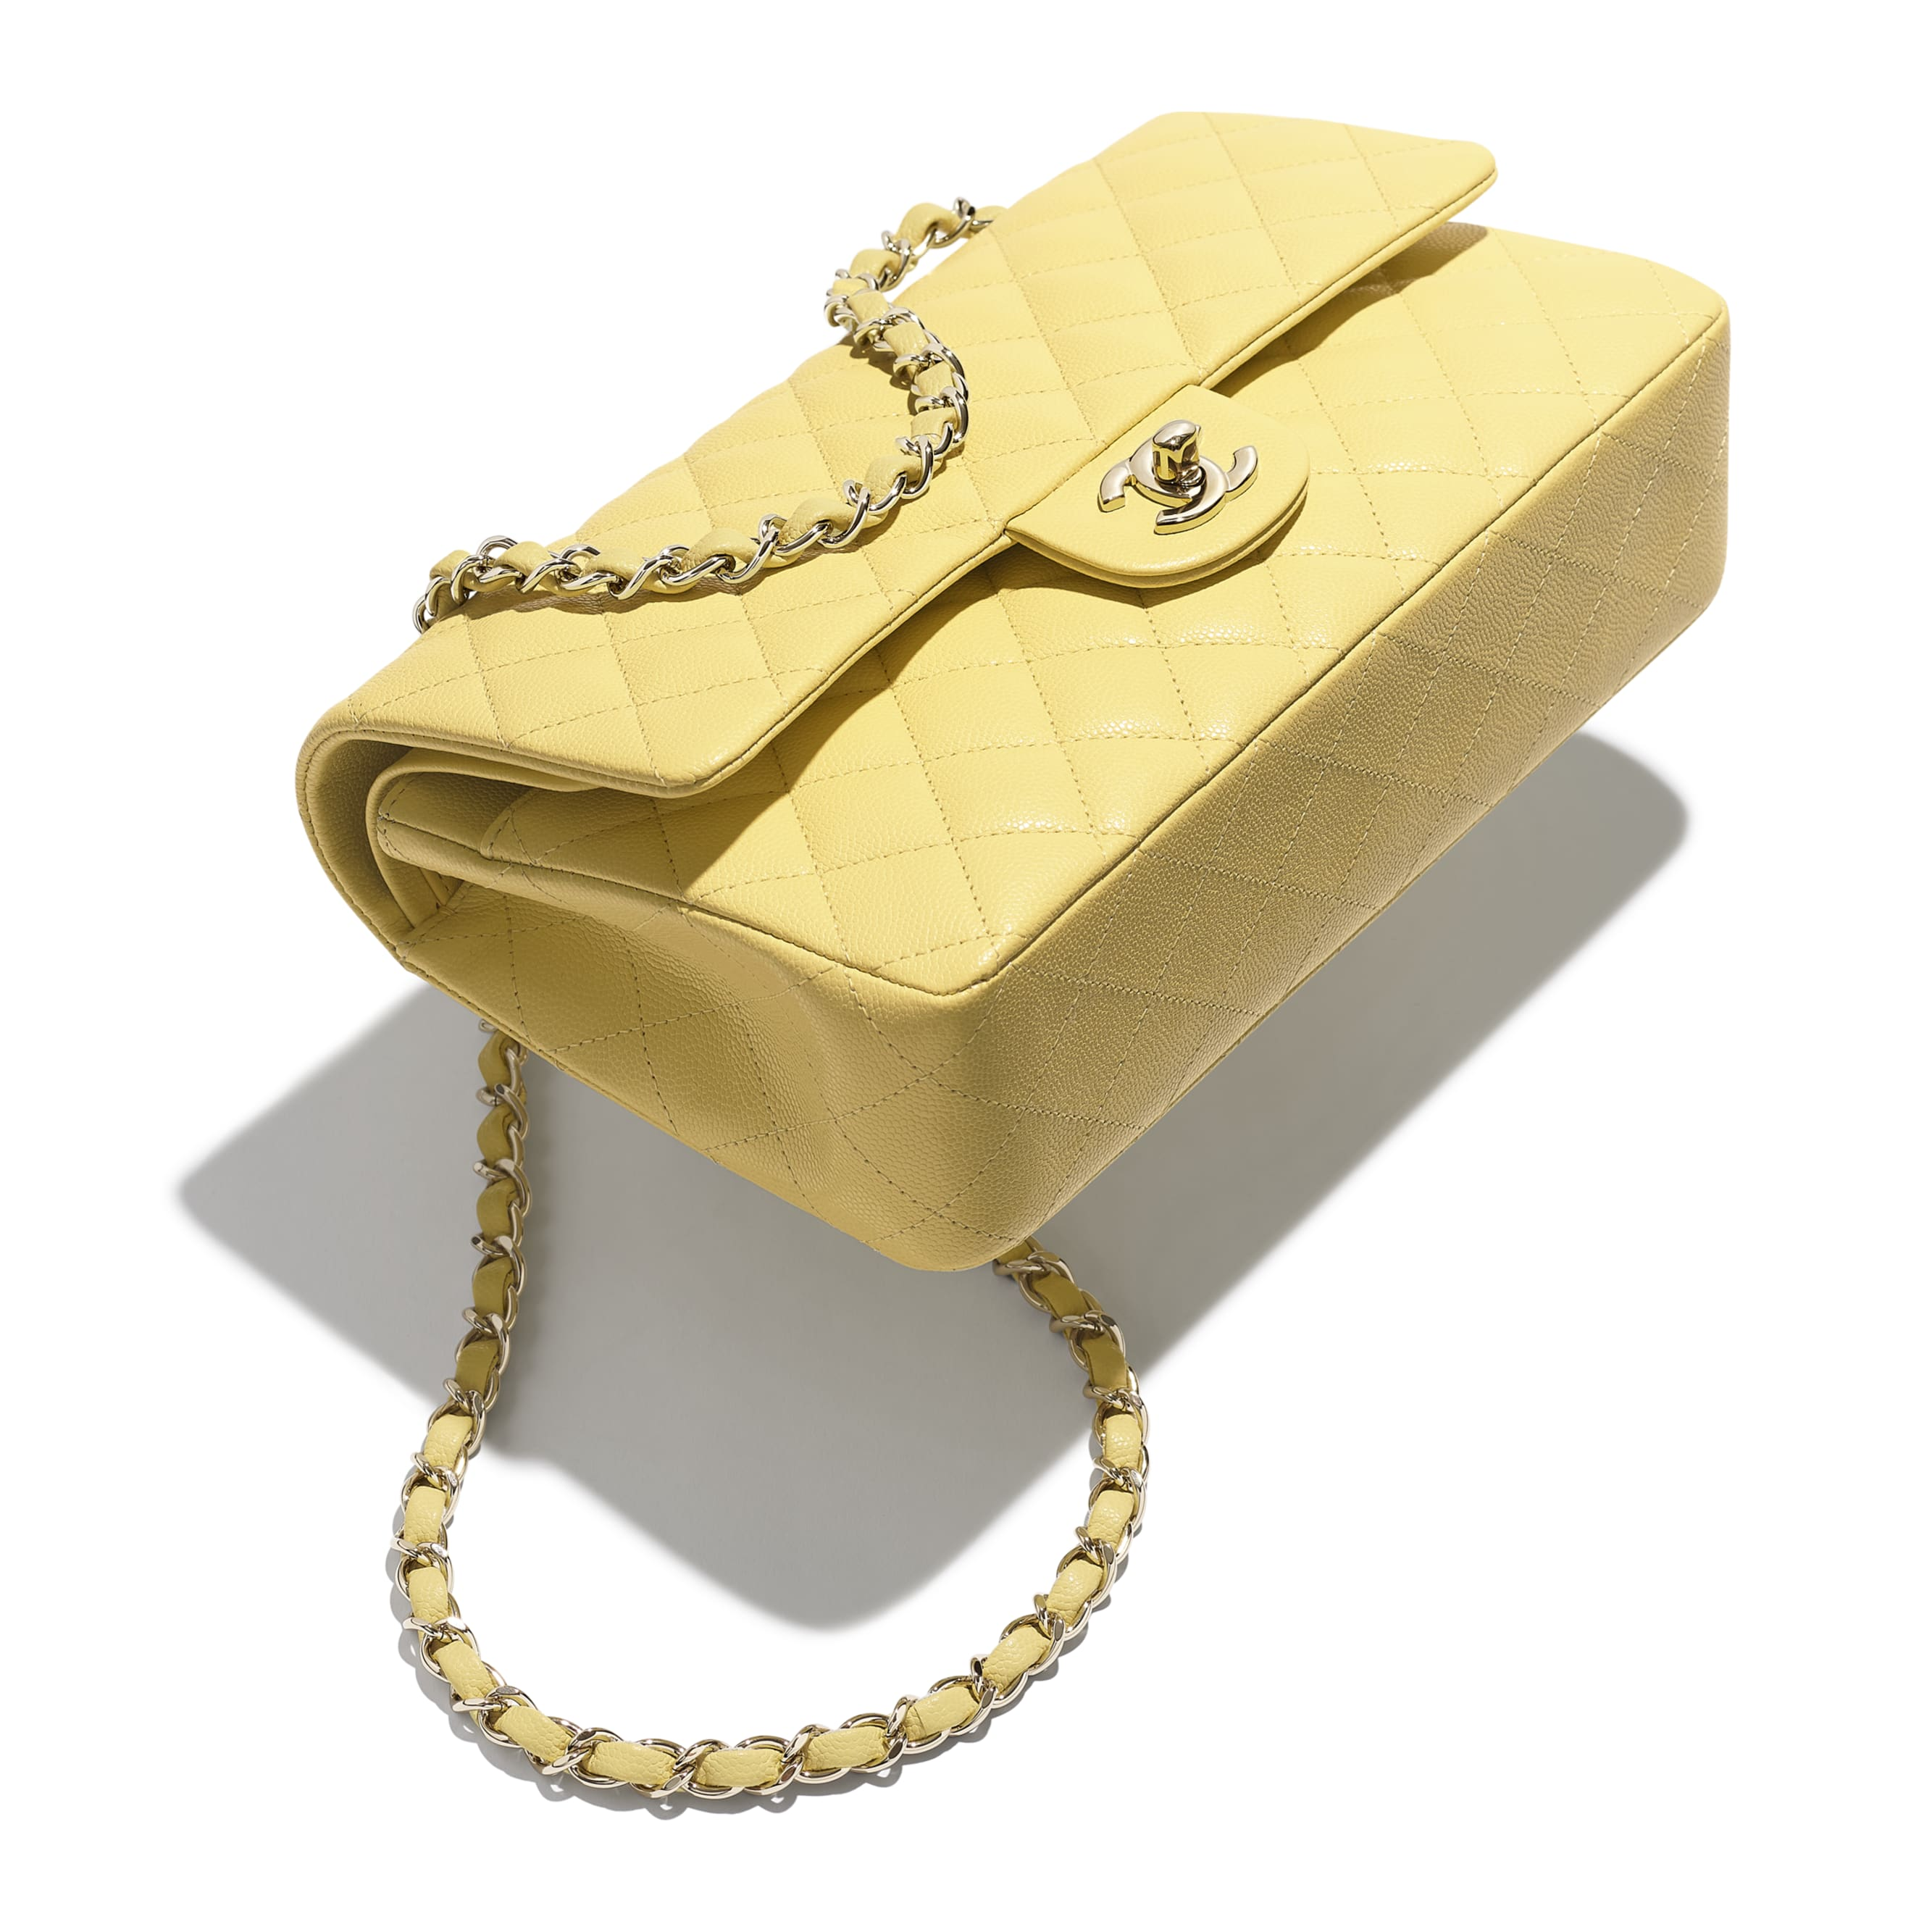 Classic Handbag - Yellow - Grained Calfskin & Gold-Tone Metal - Extra view - see standard sized version